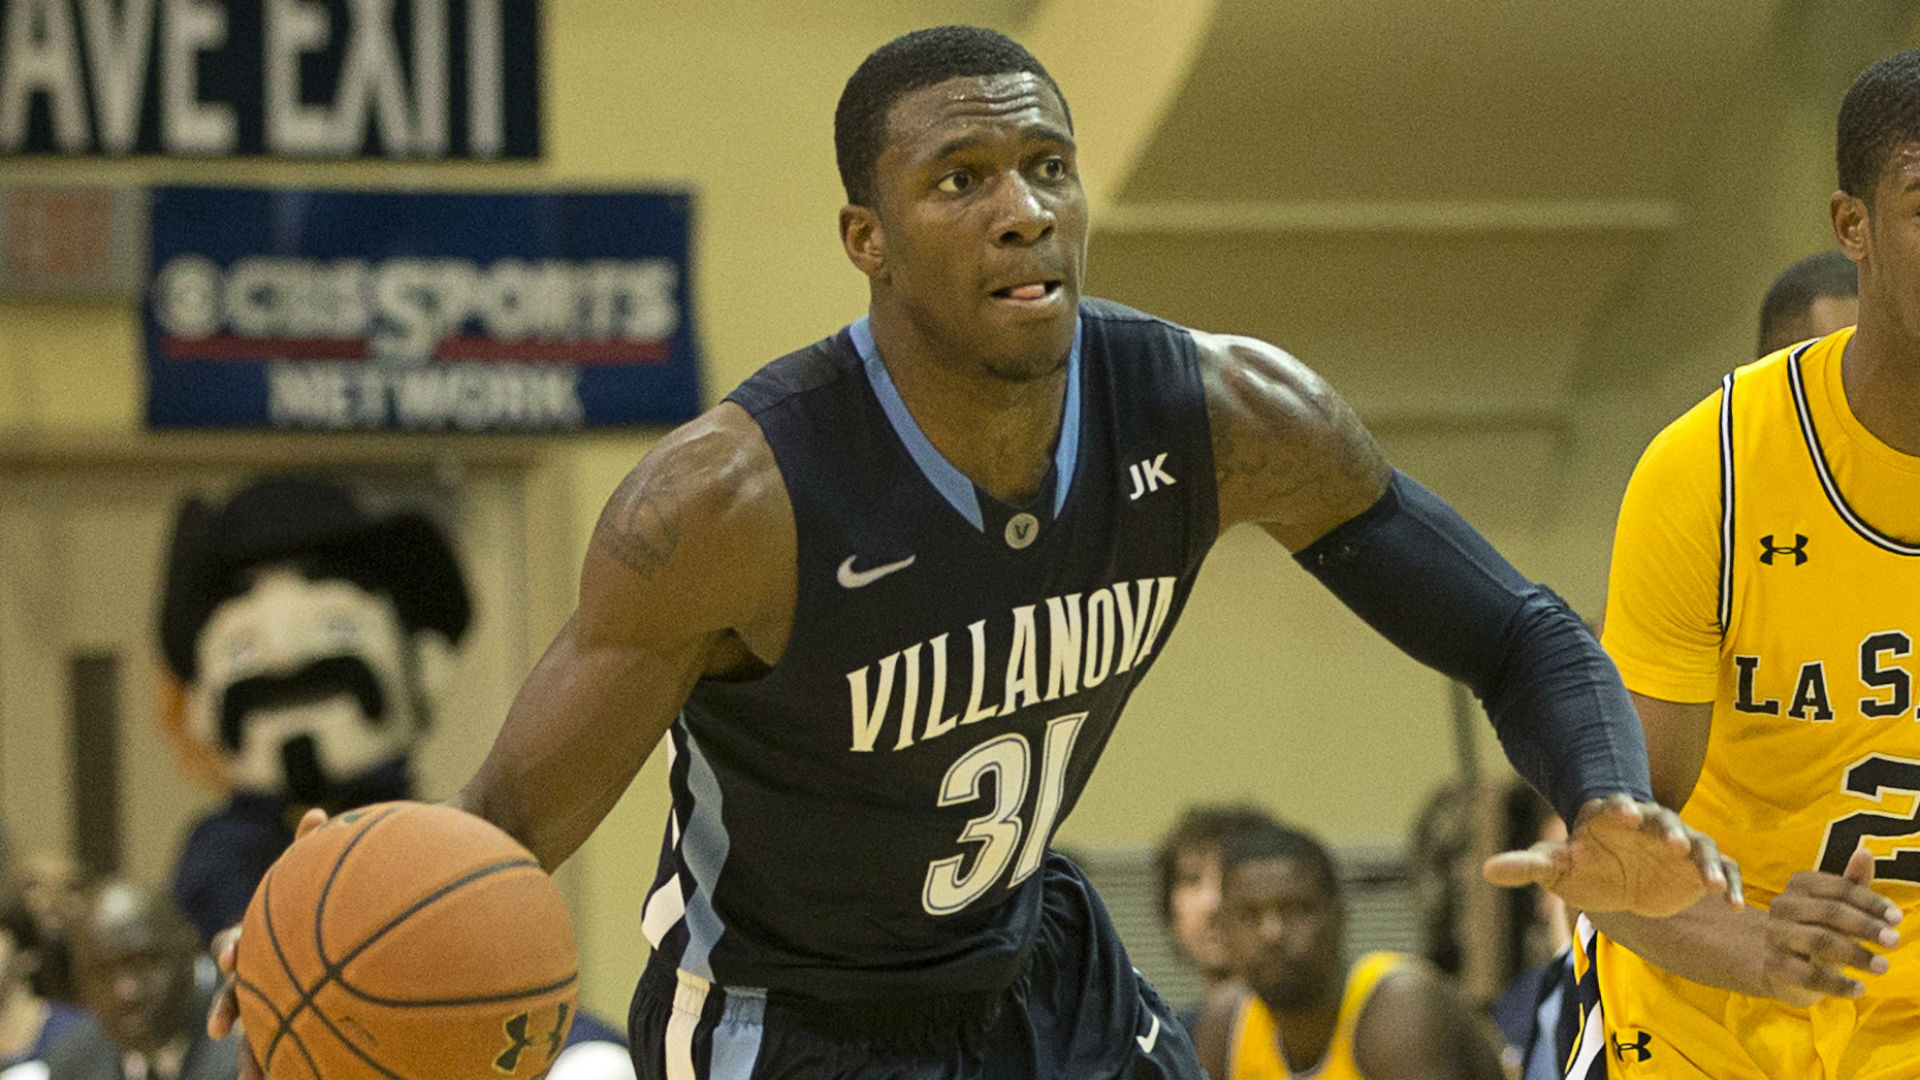 College hoops odds and picks - Louisville, Villanova in brand-name matchups at Garden